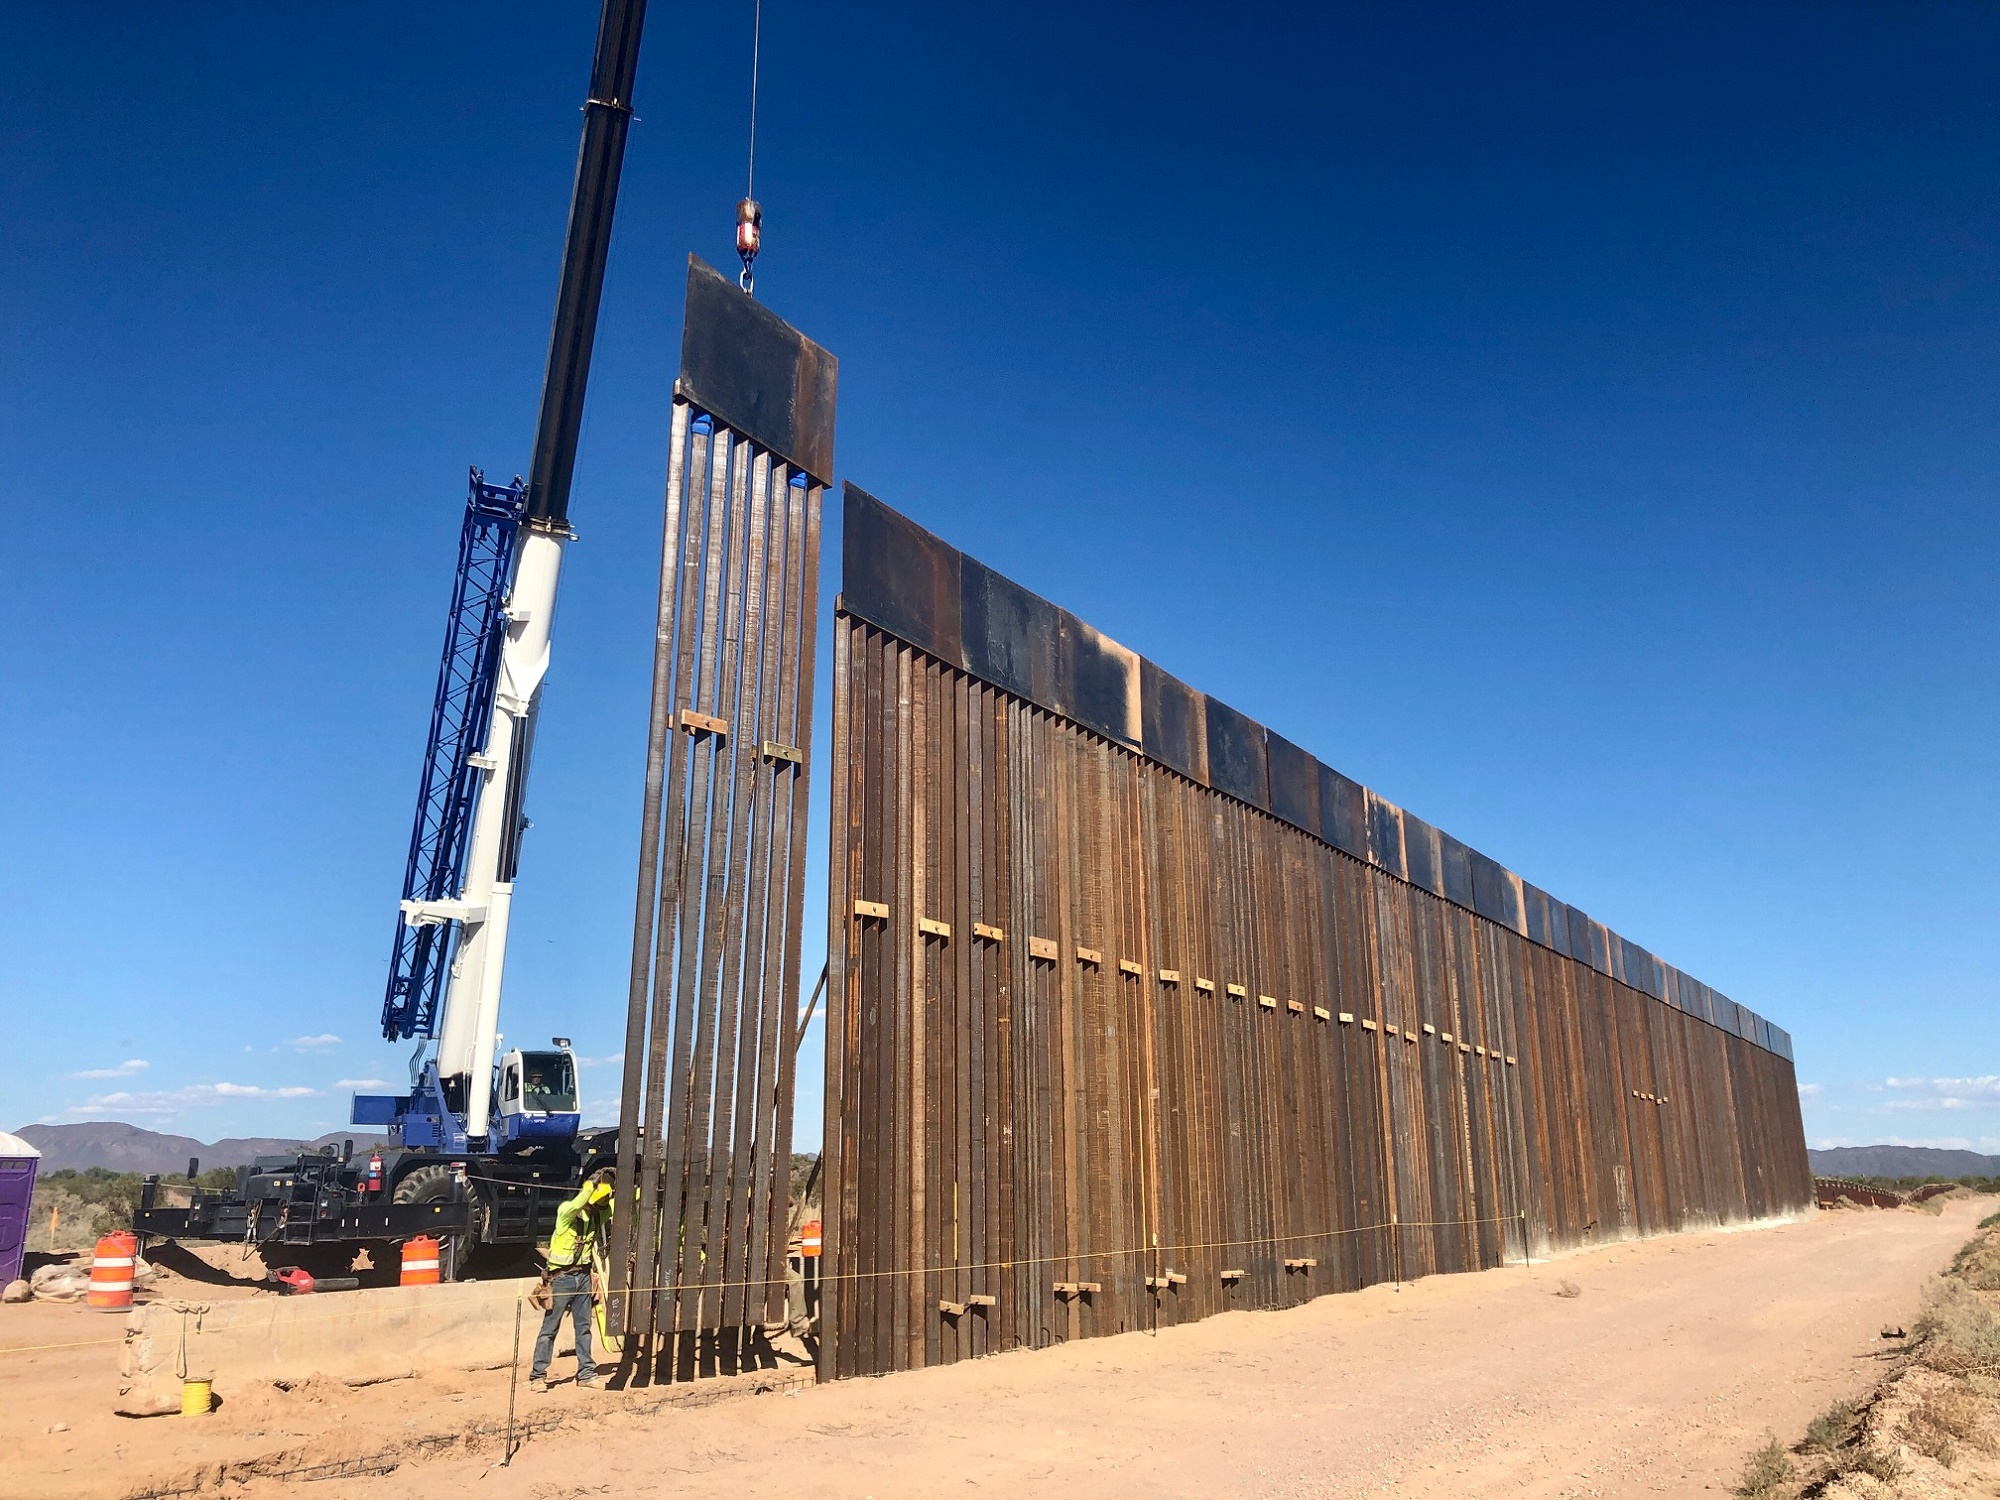 Fifth Circuit Approves of Use of Military Funds for Border Wall